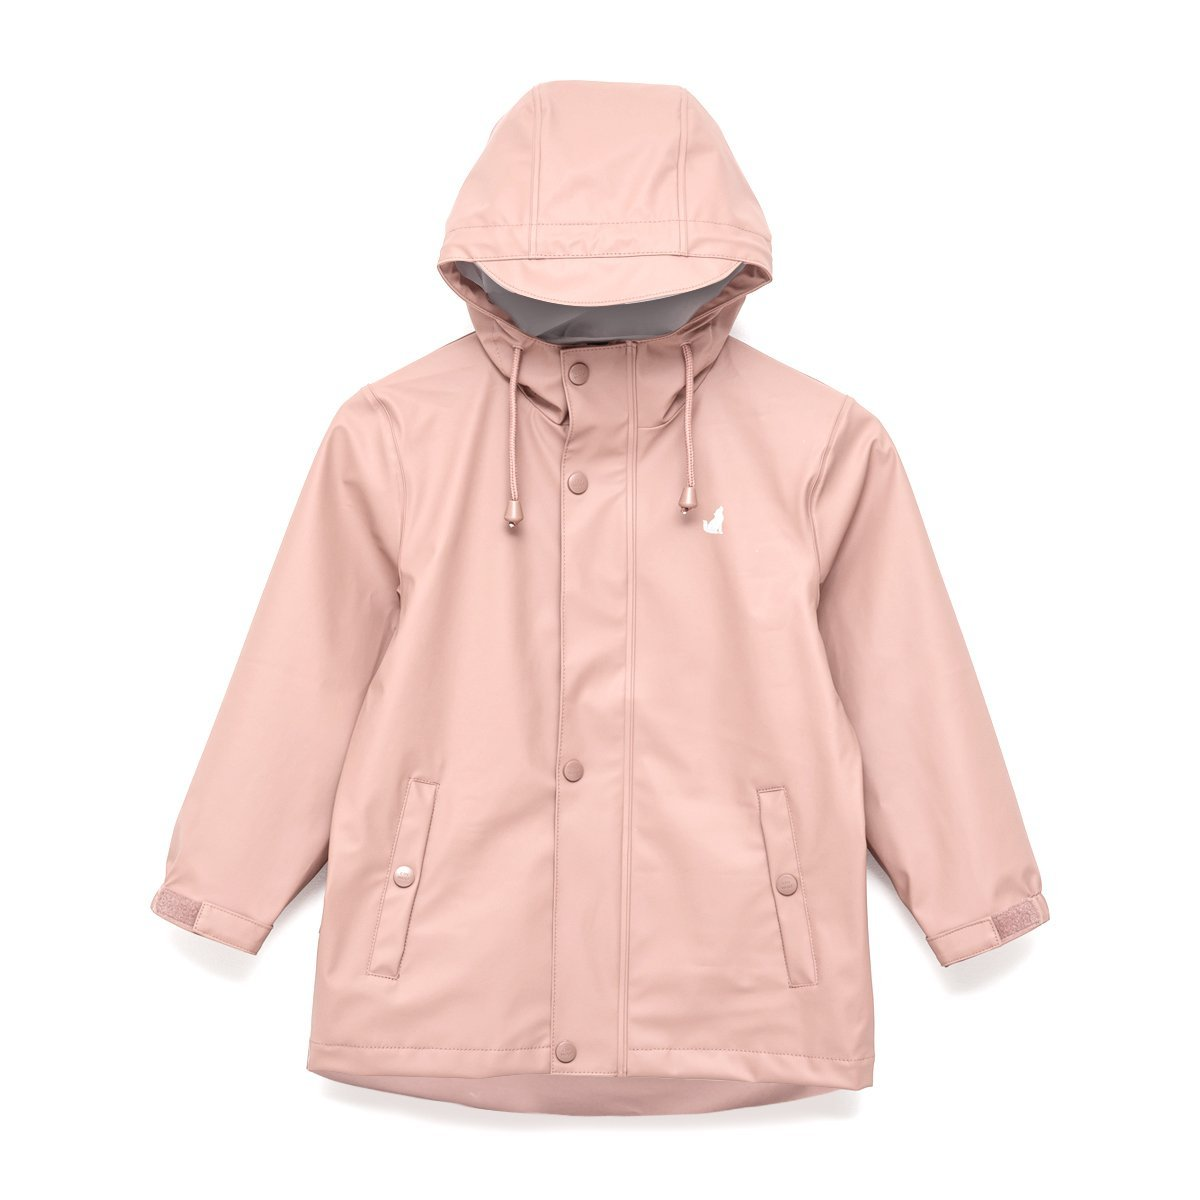 Adults Play Jacket (Pale Blush)